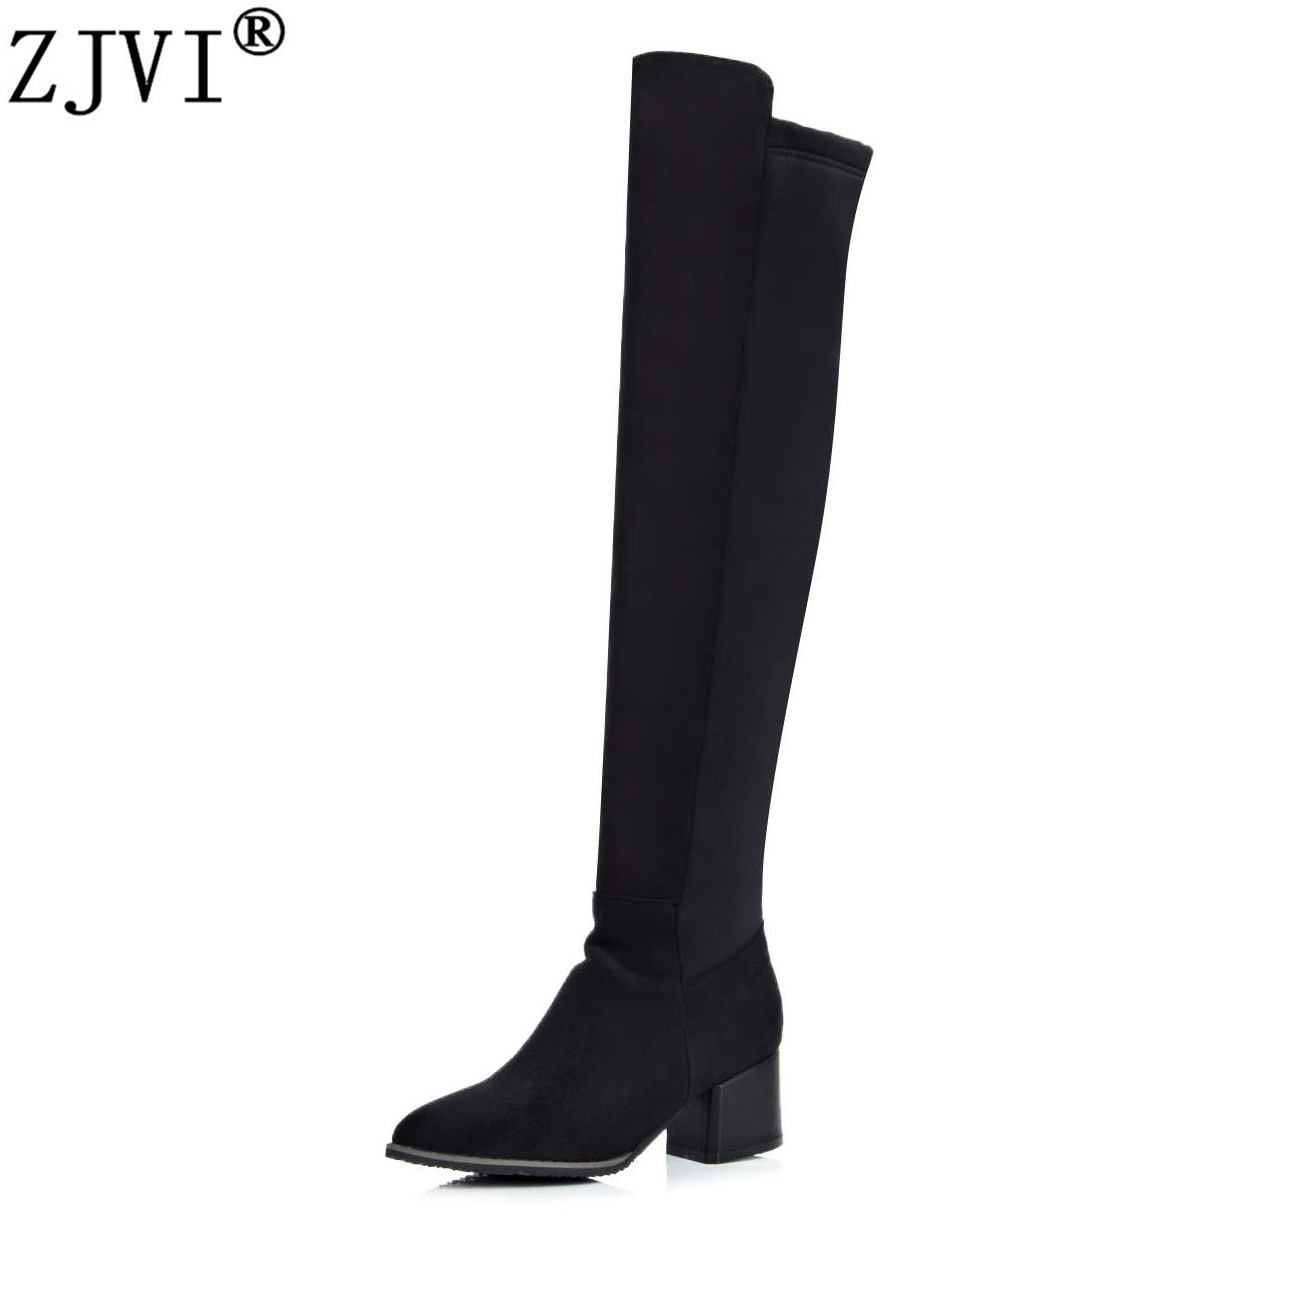 ZJVI women over the knee boots woman autumn winter stretch nubuck thigh high boots 2018 high square heels pointed toe shoes hot runway sexy women boots stretch silk pointed toe stiletto high heels over the knee boots jersey thigh high boots shoes woman